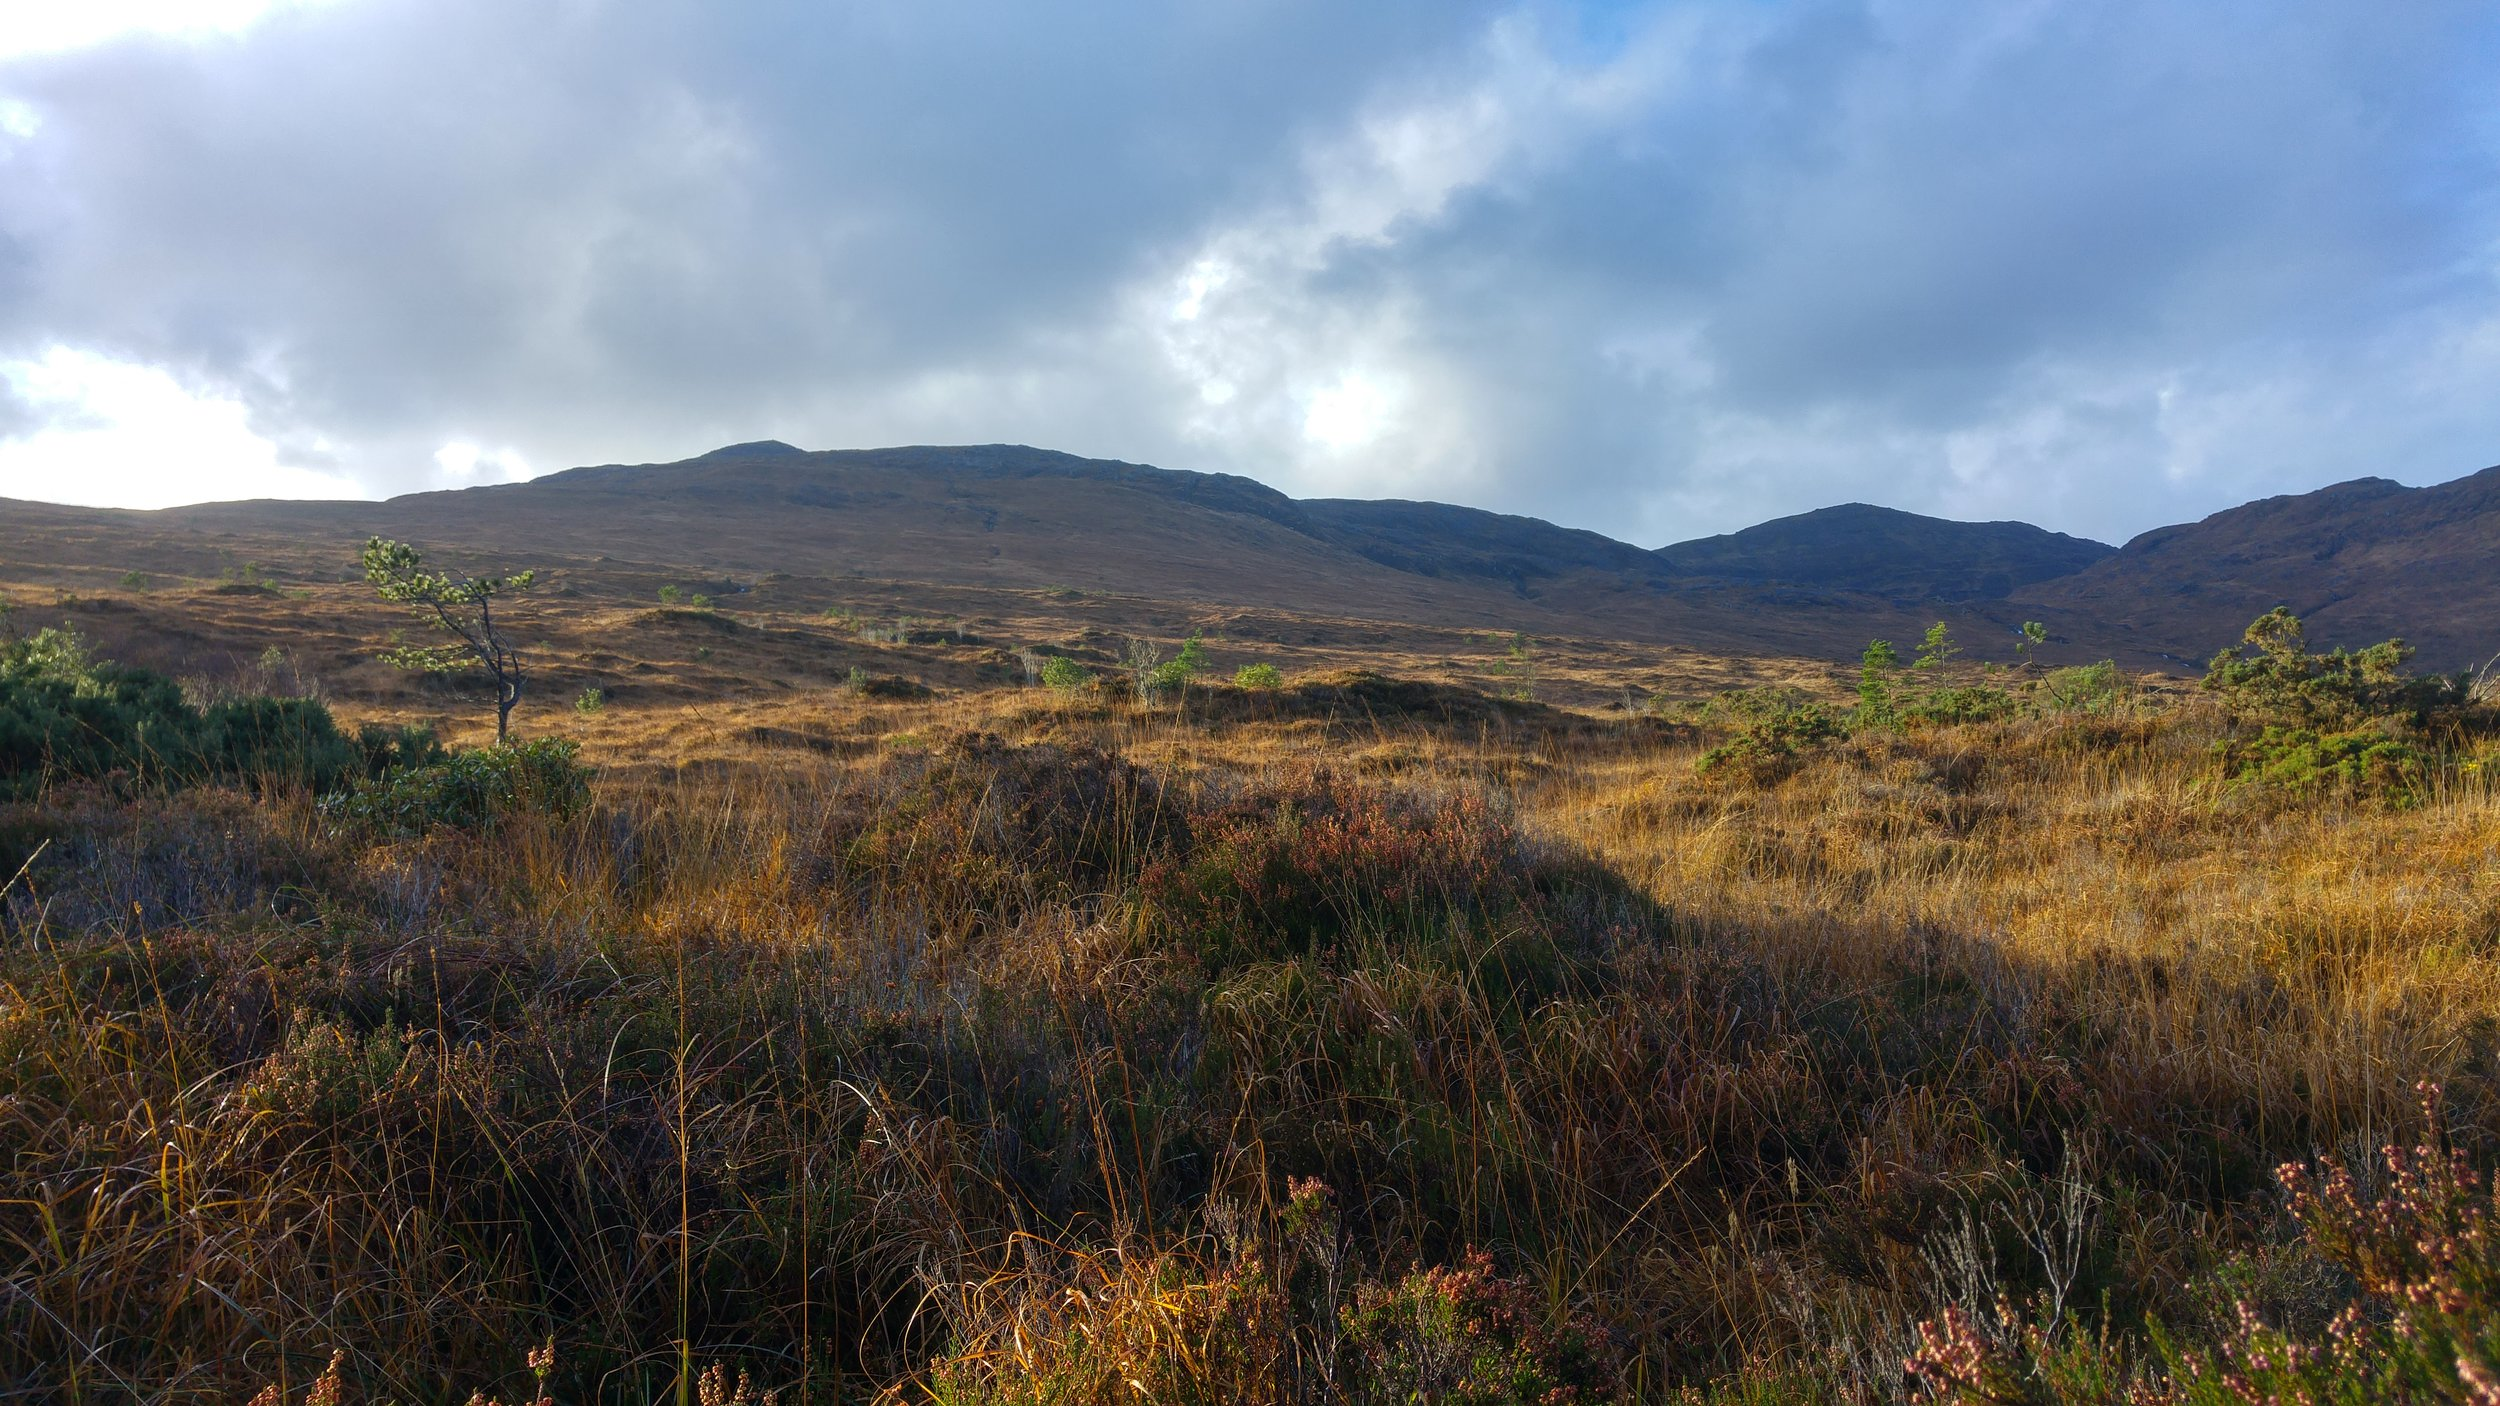 The open hill was very wet, rough and difficult to survey in a systematic fashion. In wet and windy weather it was cold and exposed. In sunnier weather, the late autumn colours looked great and it was a pleasure to walk the ground.